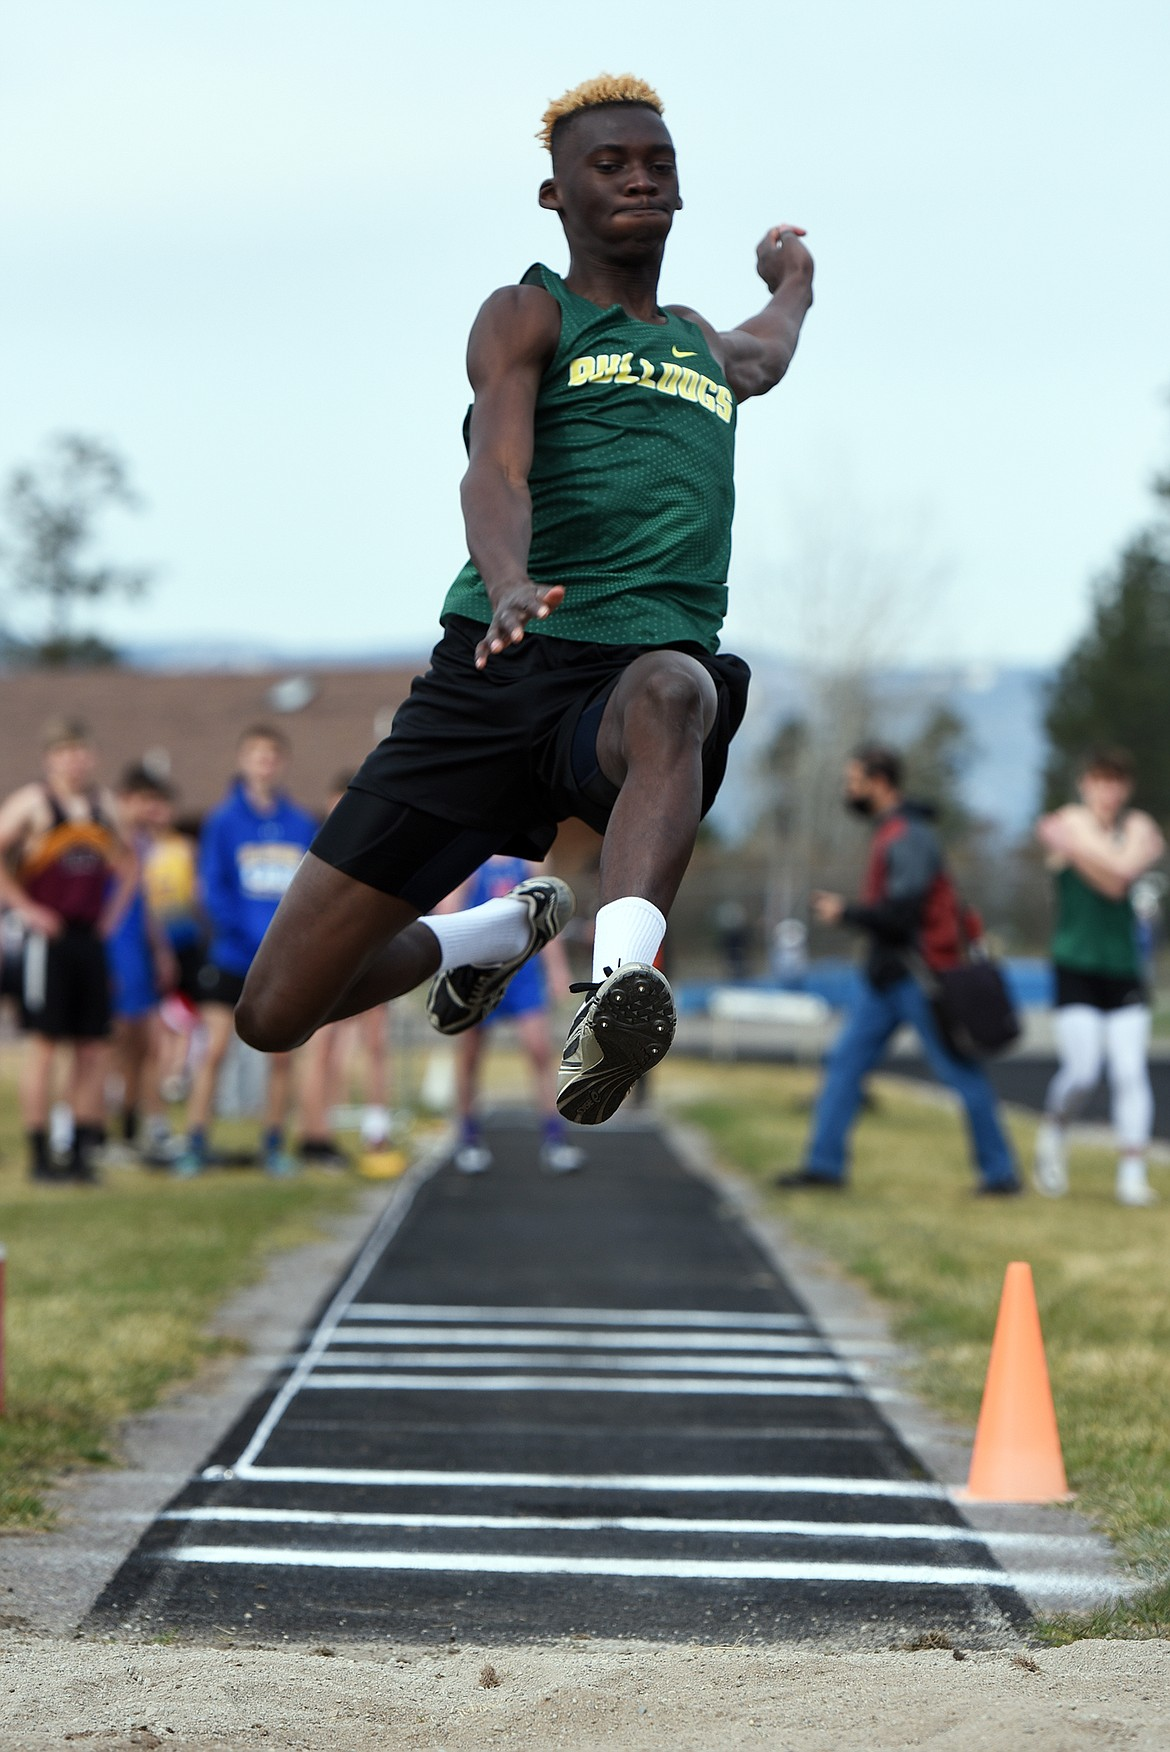 Bulldog Marvin Kimera flies to a fourth-place finish in the long jump at the Bigfork Invite track meet in Bigfork on Saturday. (Jeremy Weber/Daily Inter Lake)